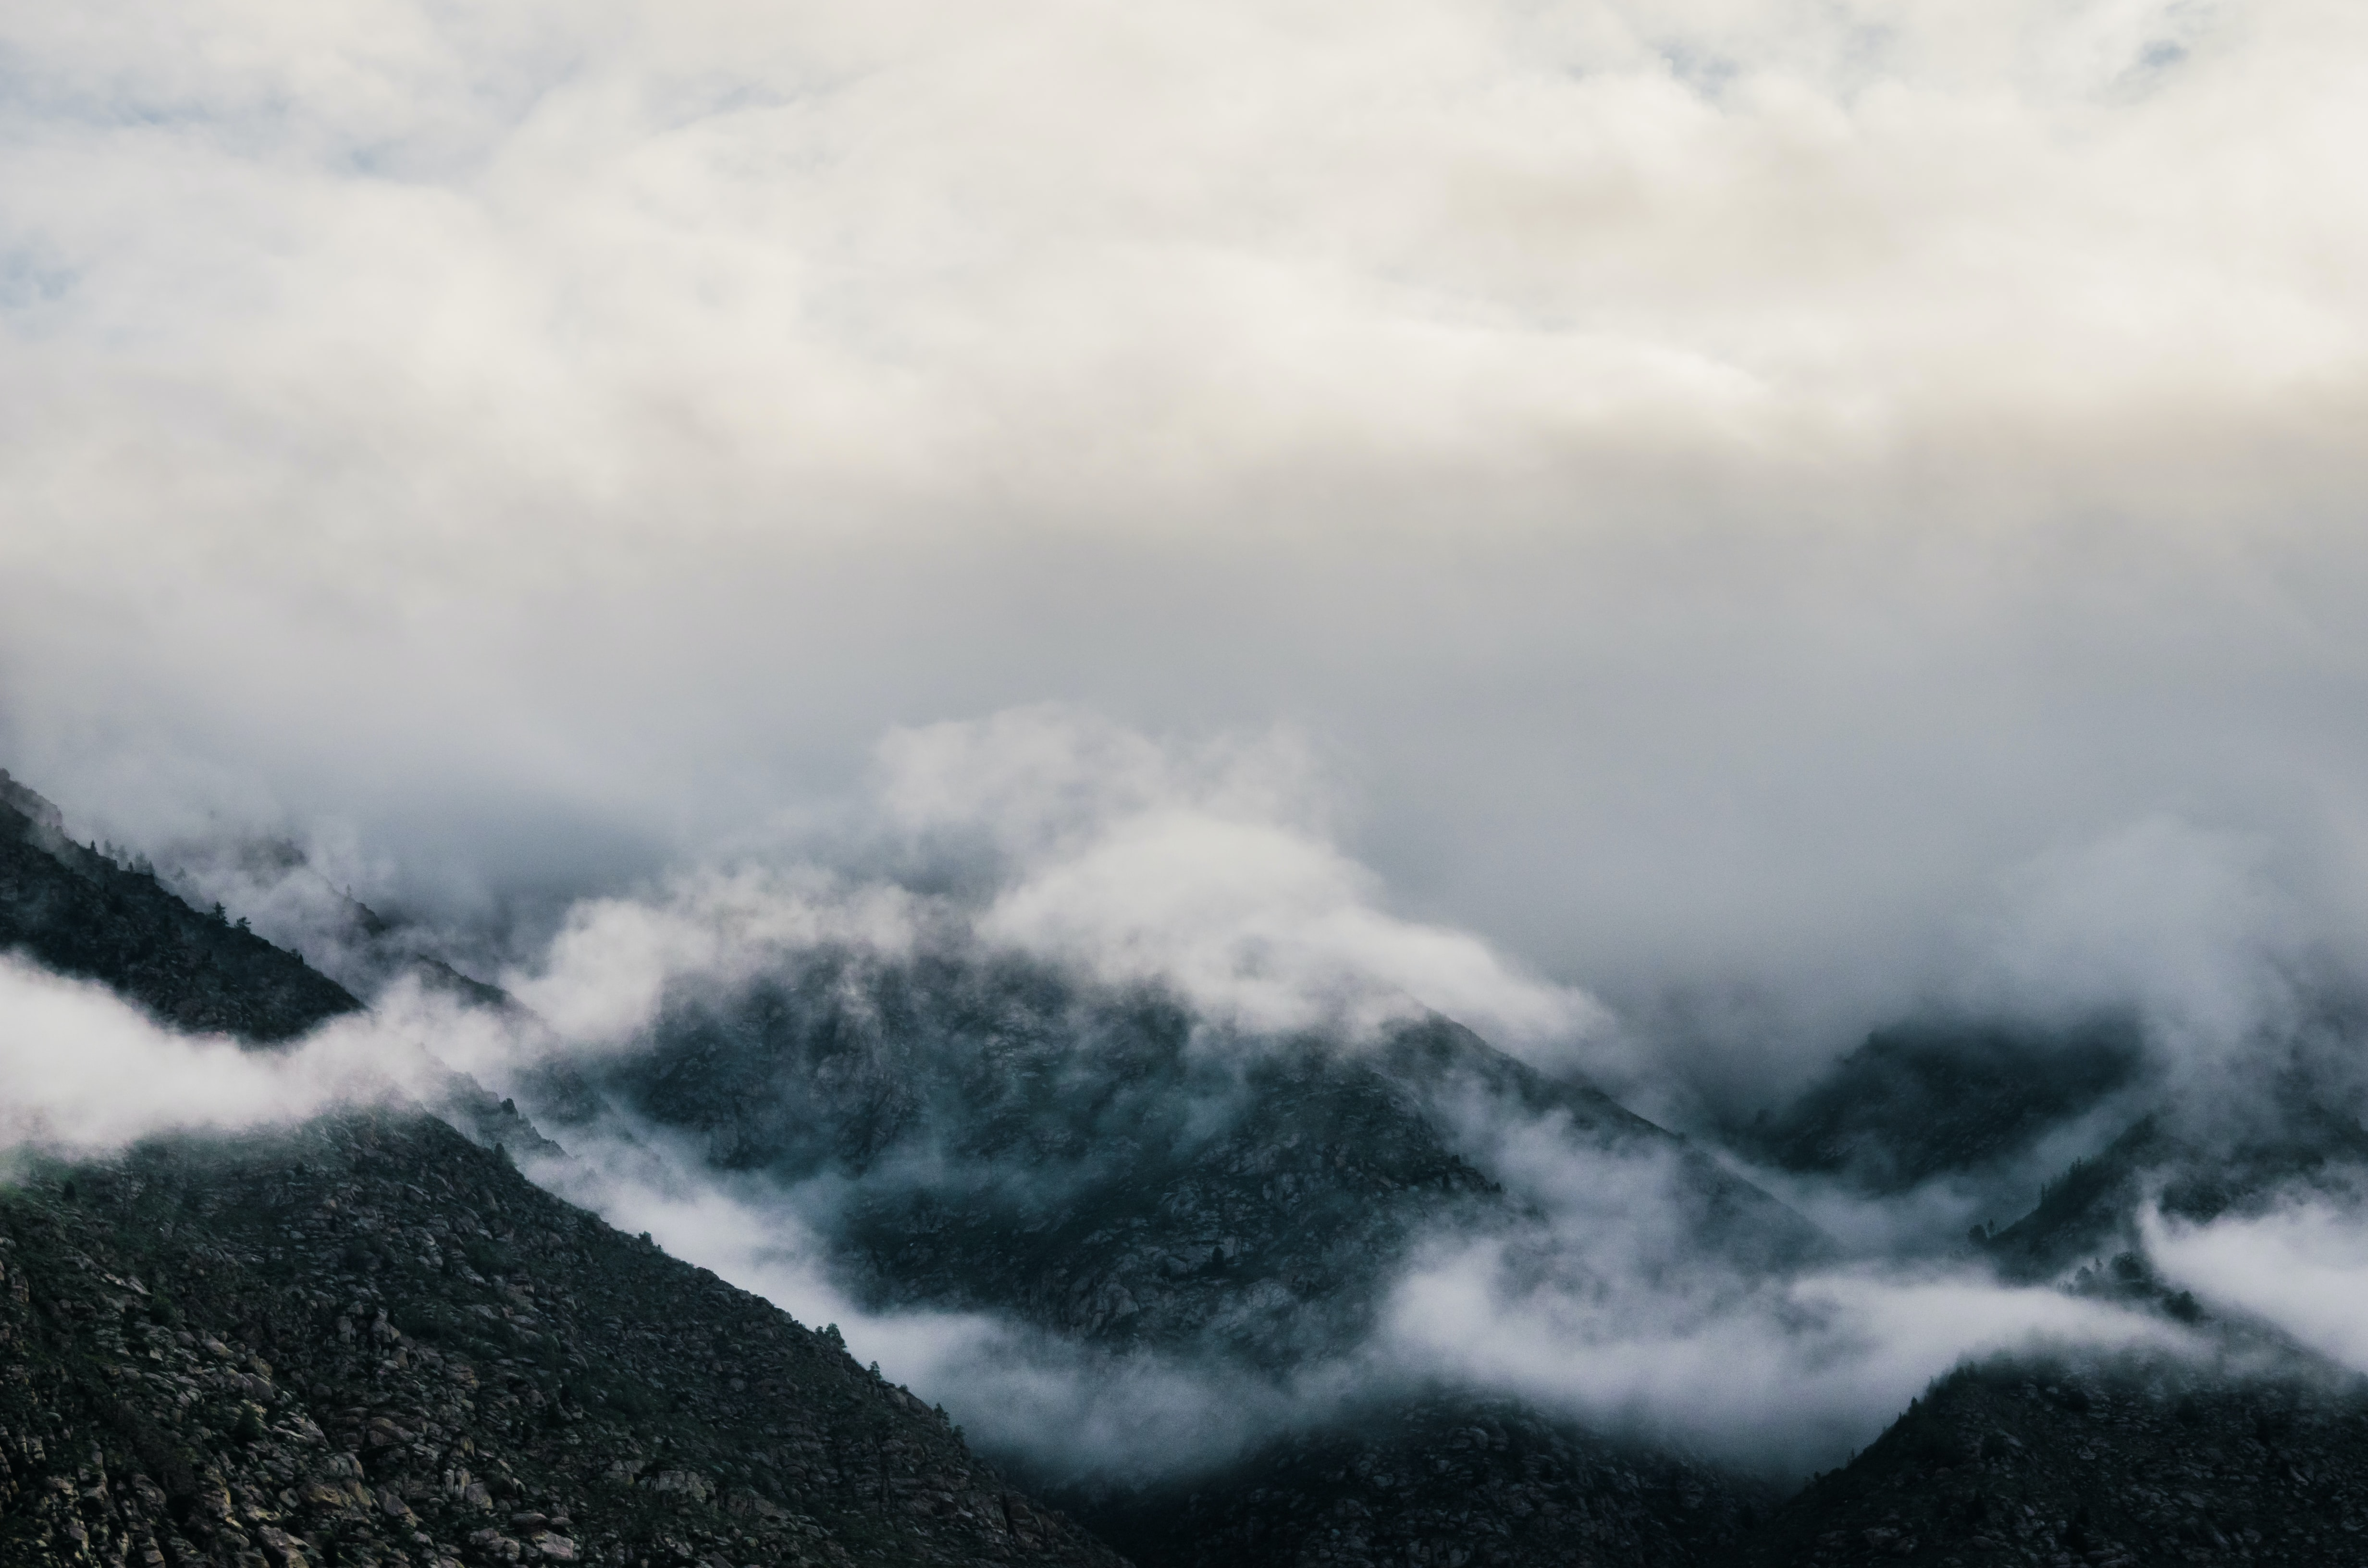 bird's eye view of mountains surrounded by fogs